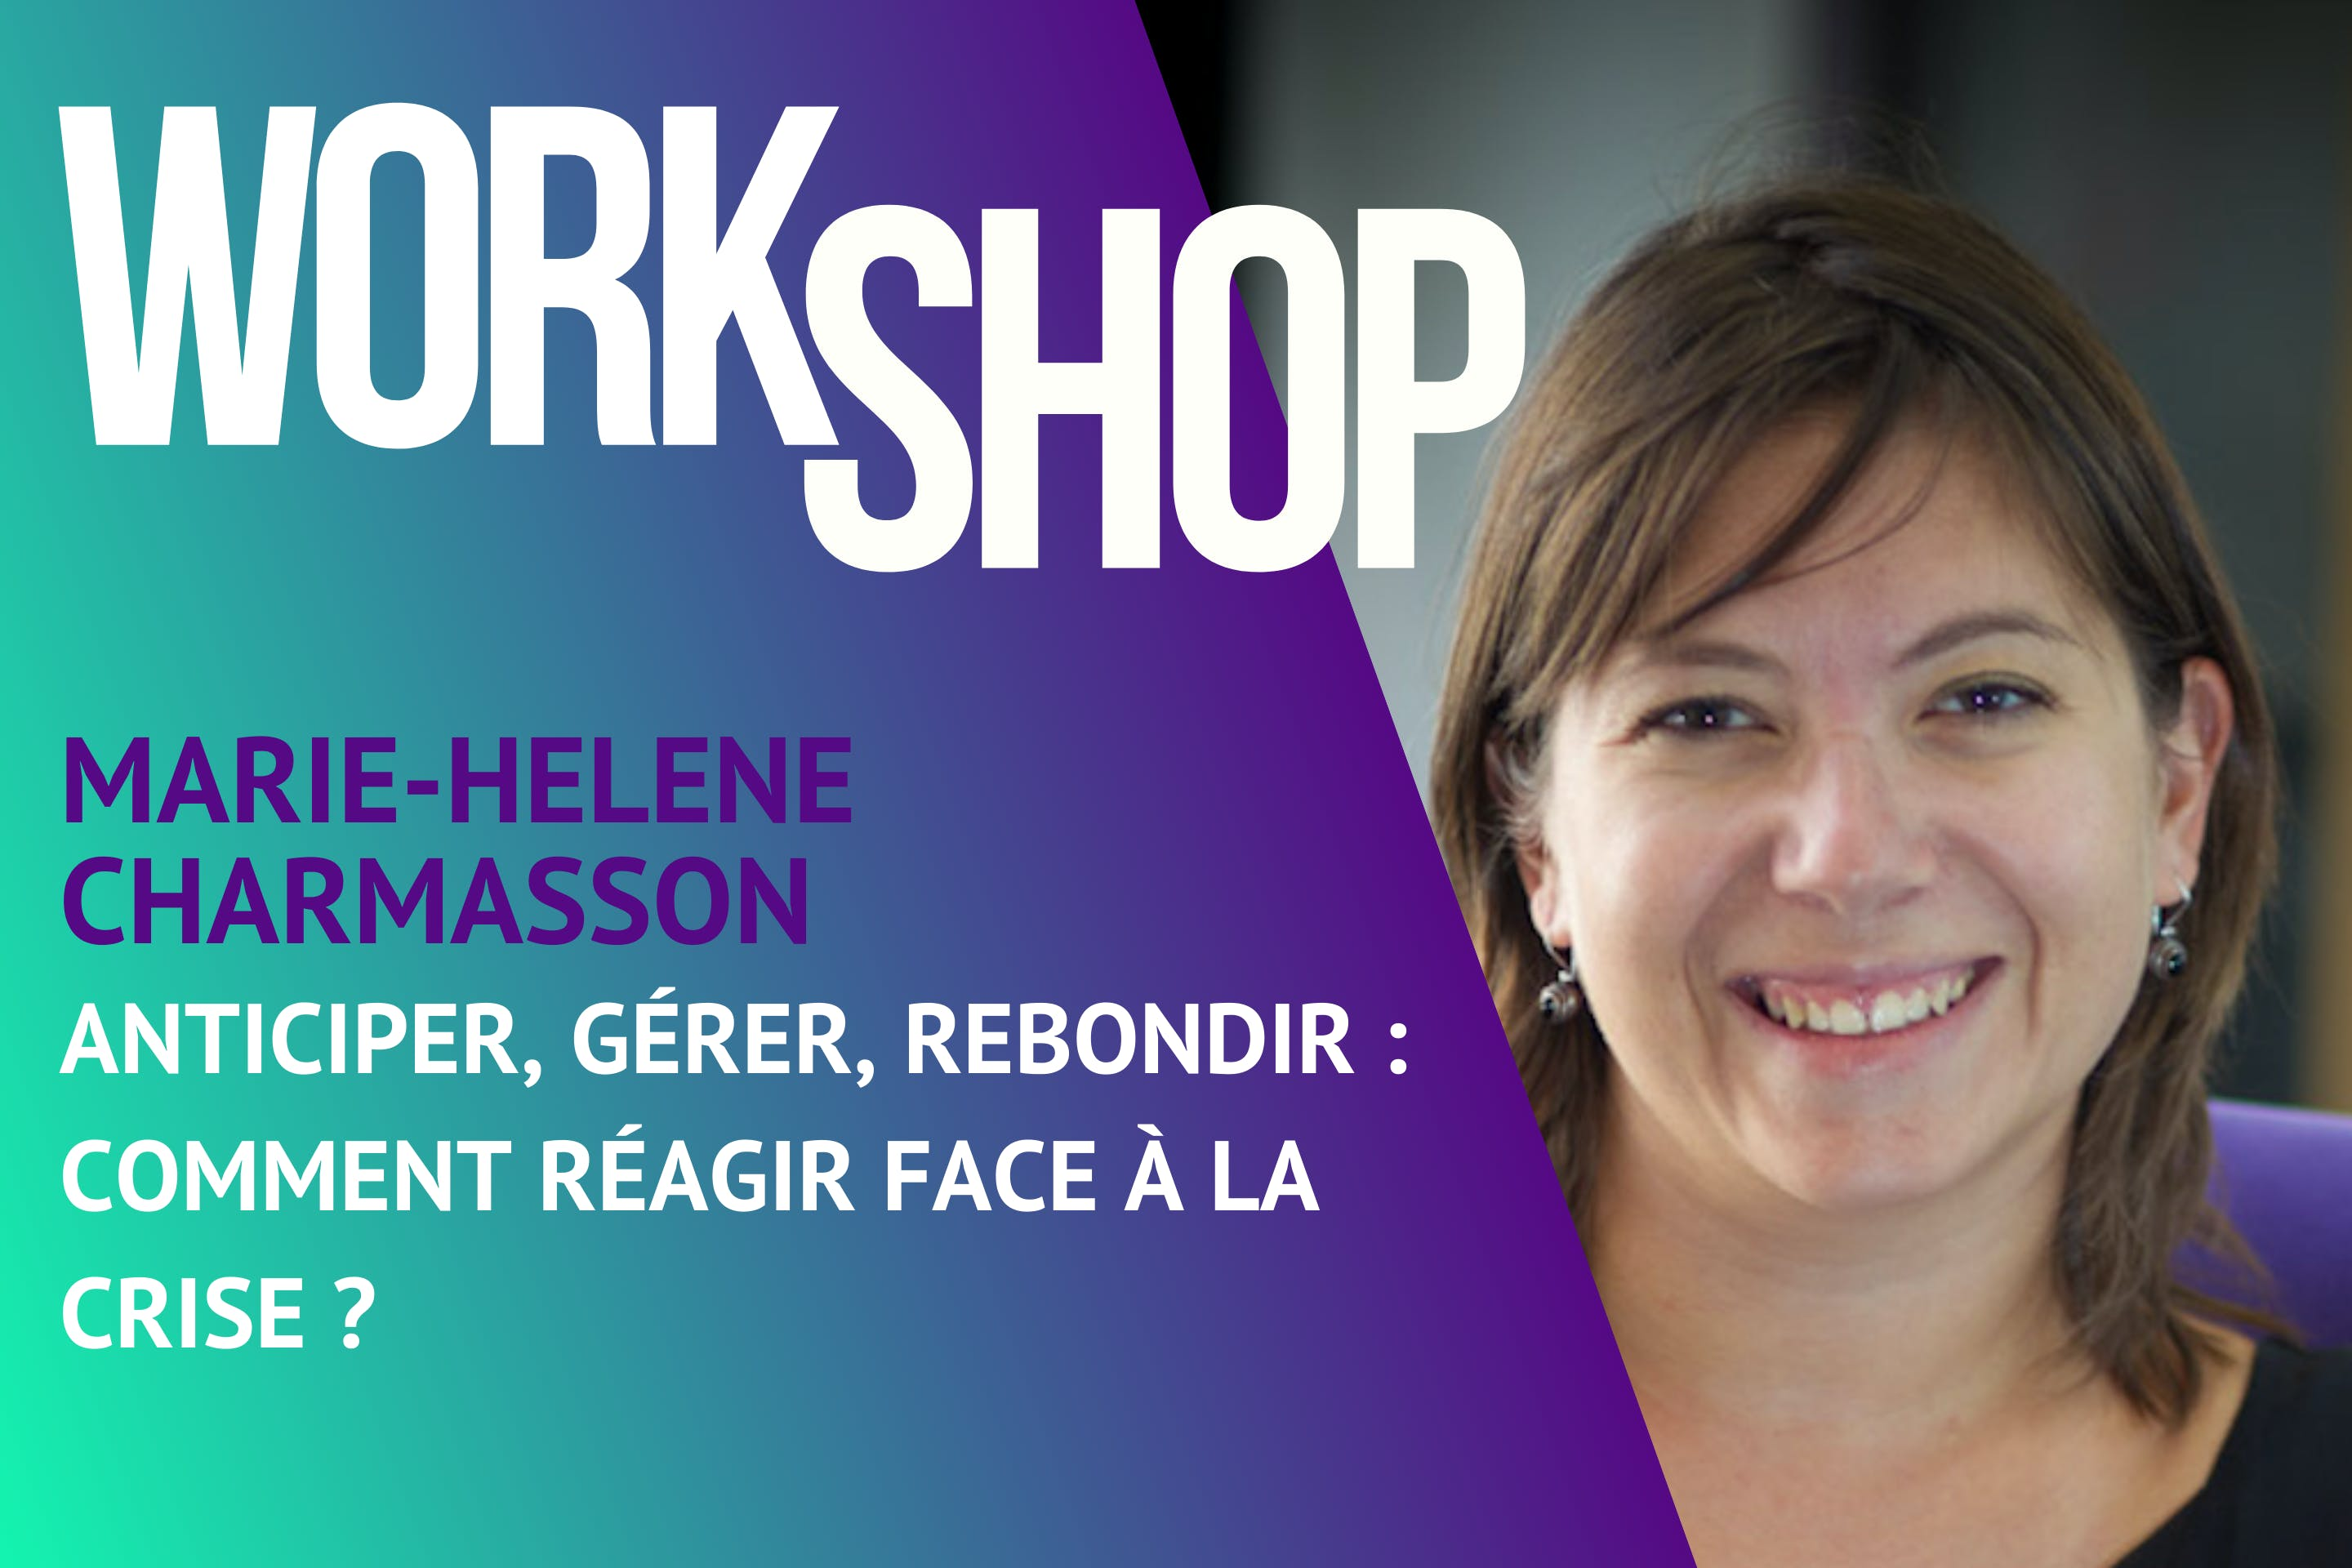 Workshop BeeMyDesk - Marie-Hélène Charmasson - Anticiper, gérer, rebondir : comment réagir face à la crise ?